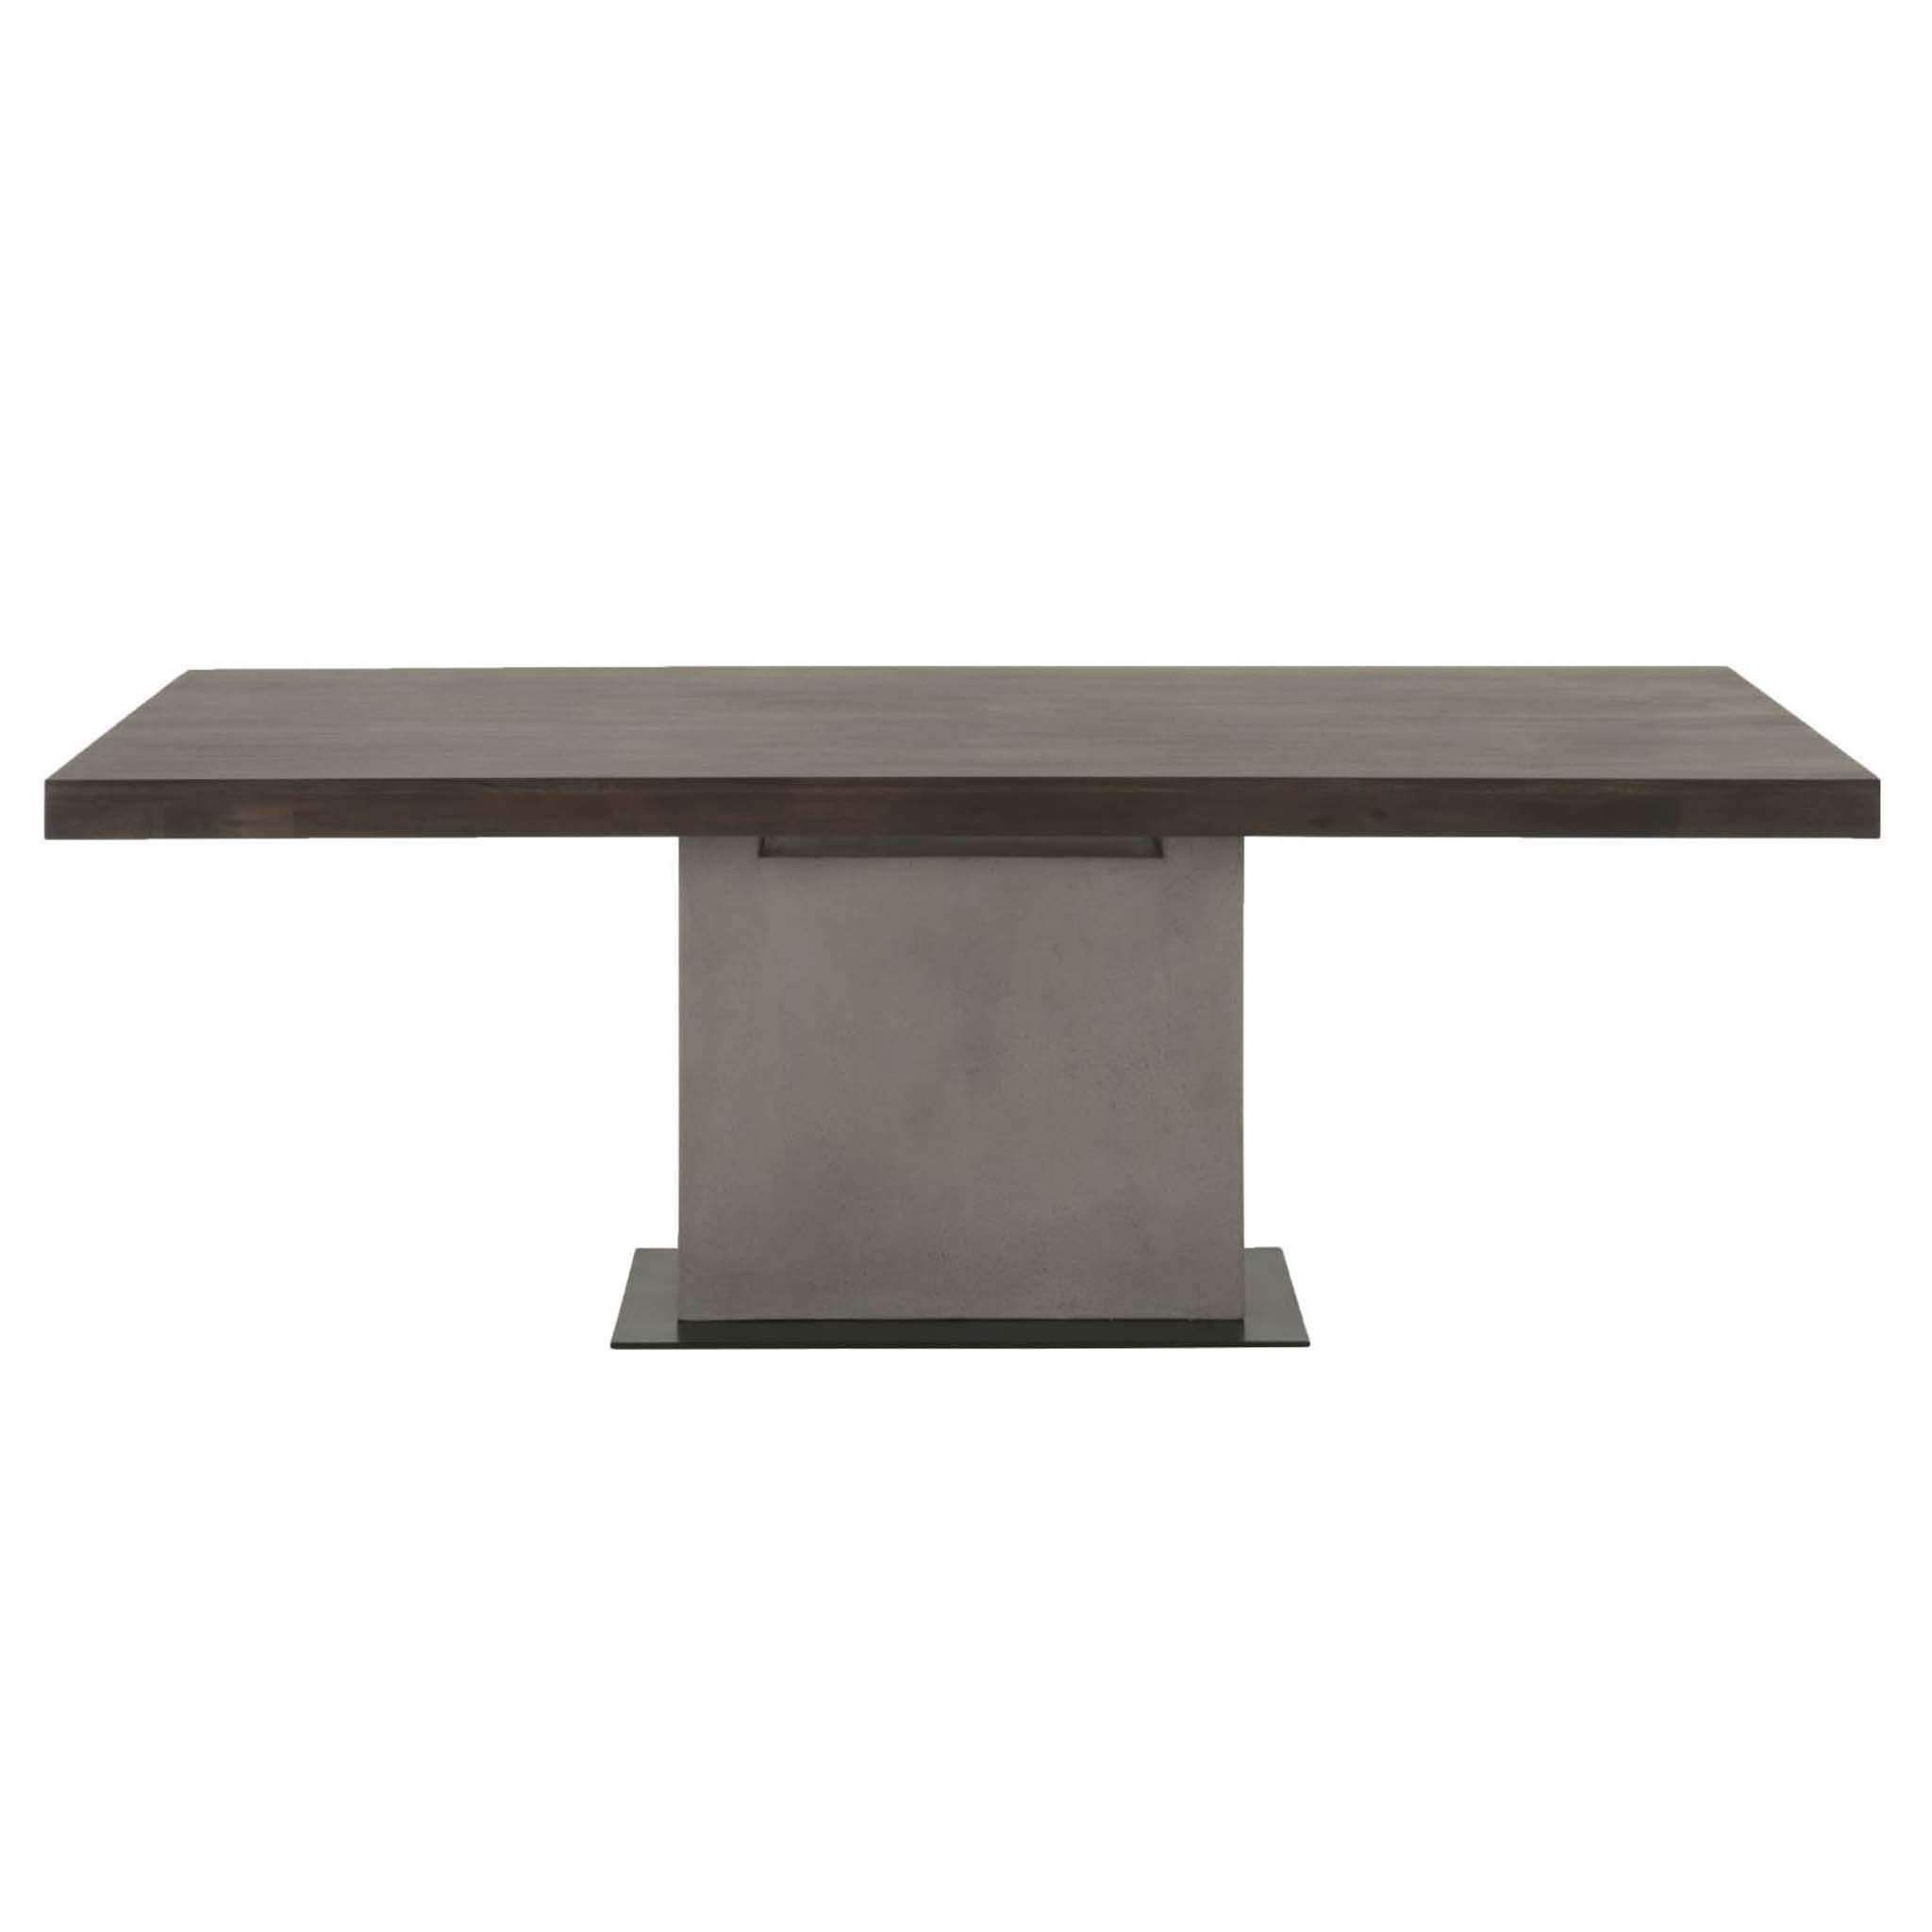 Cuba Dining Table Dining table, Pedestal dining table